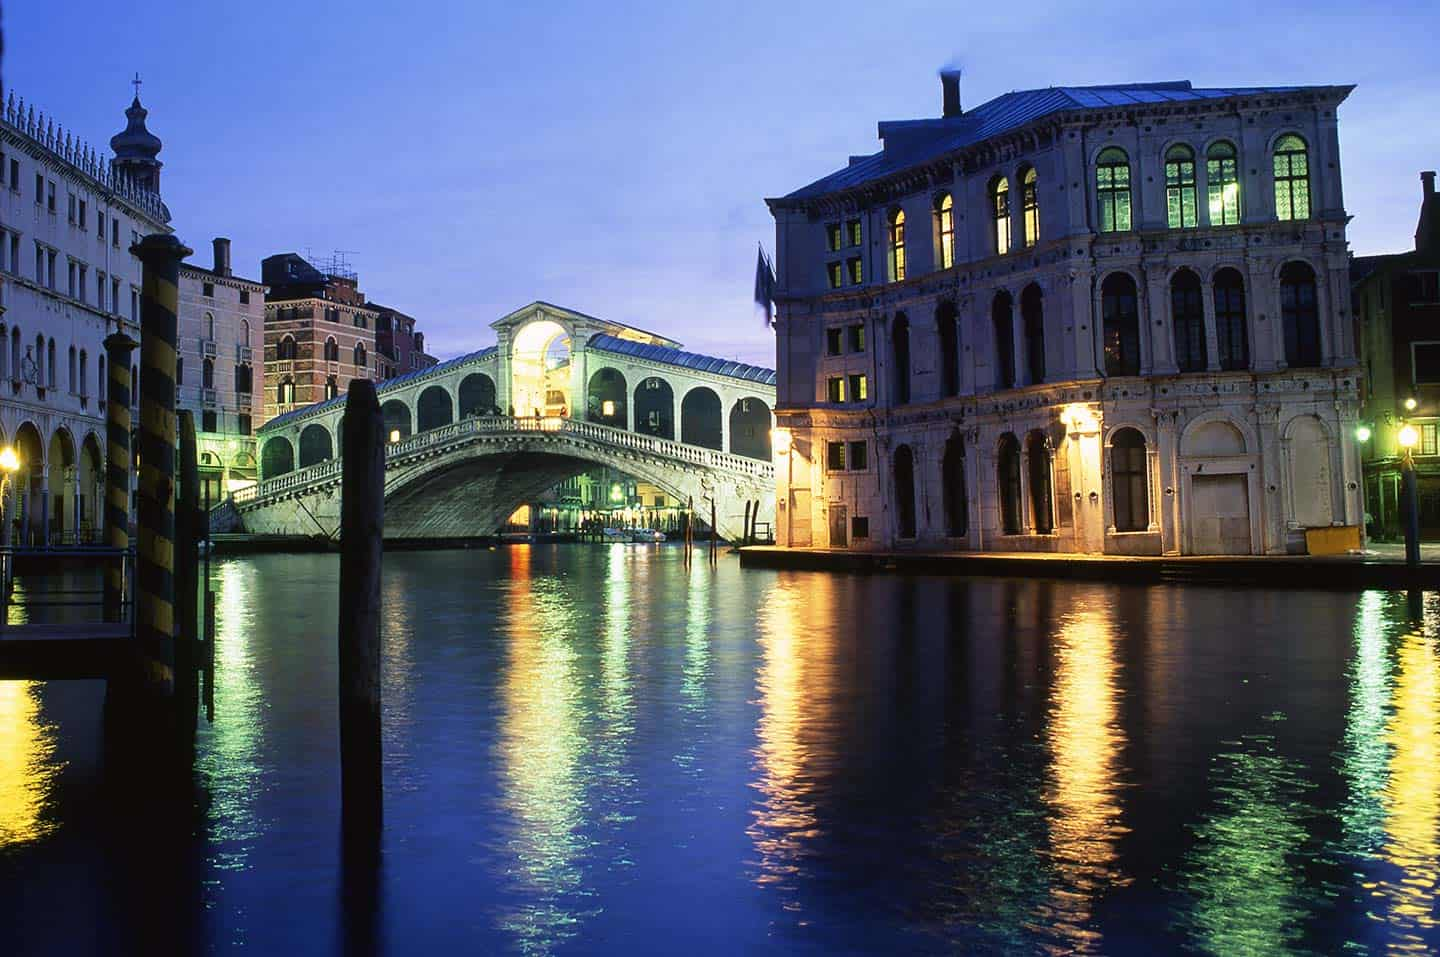 Image of the Rialto Bridge and Grand canal in Venice at night